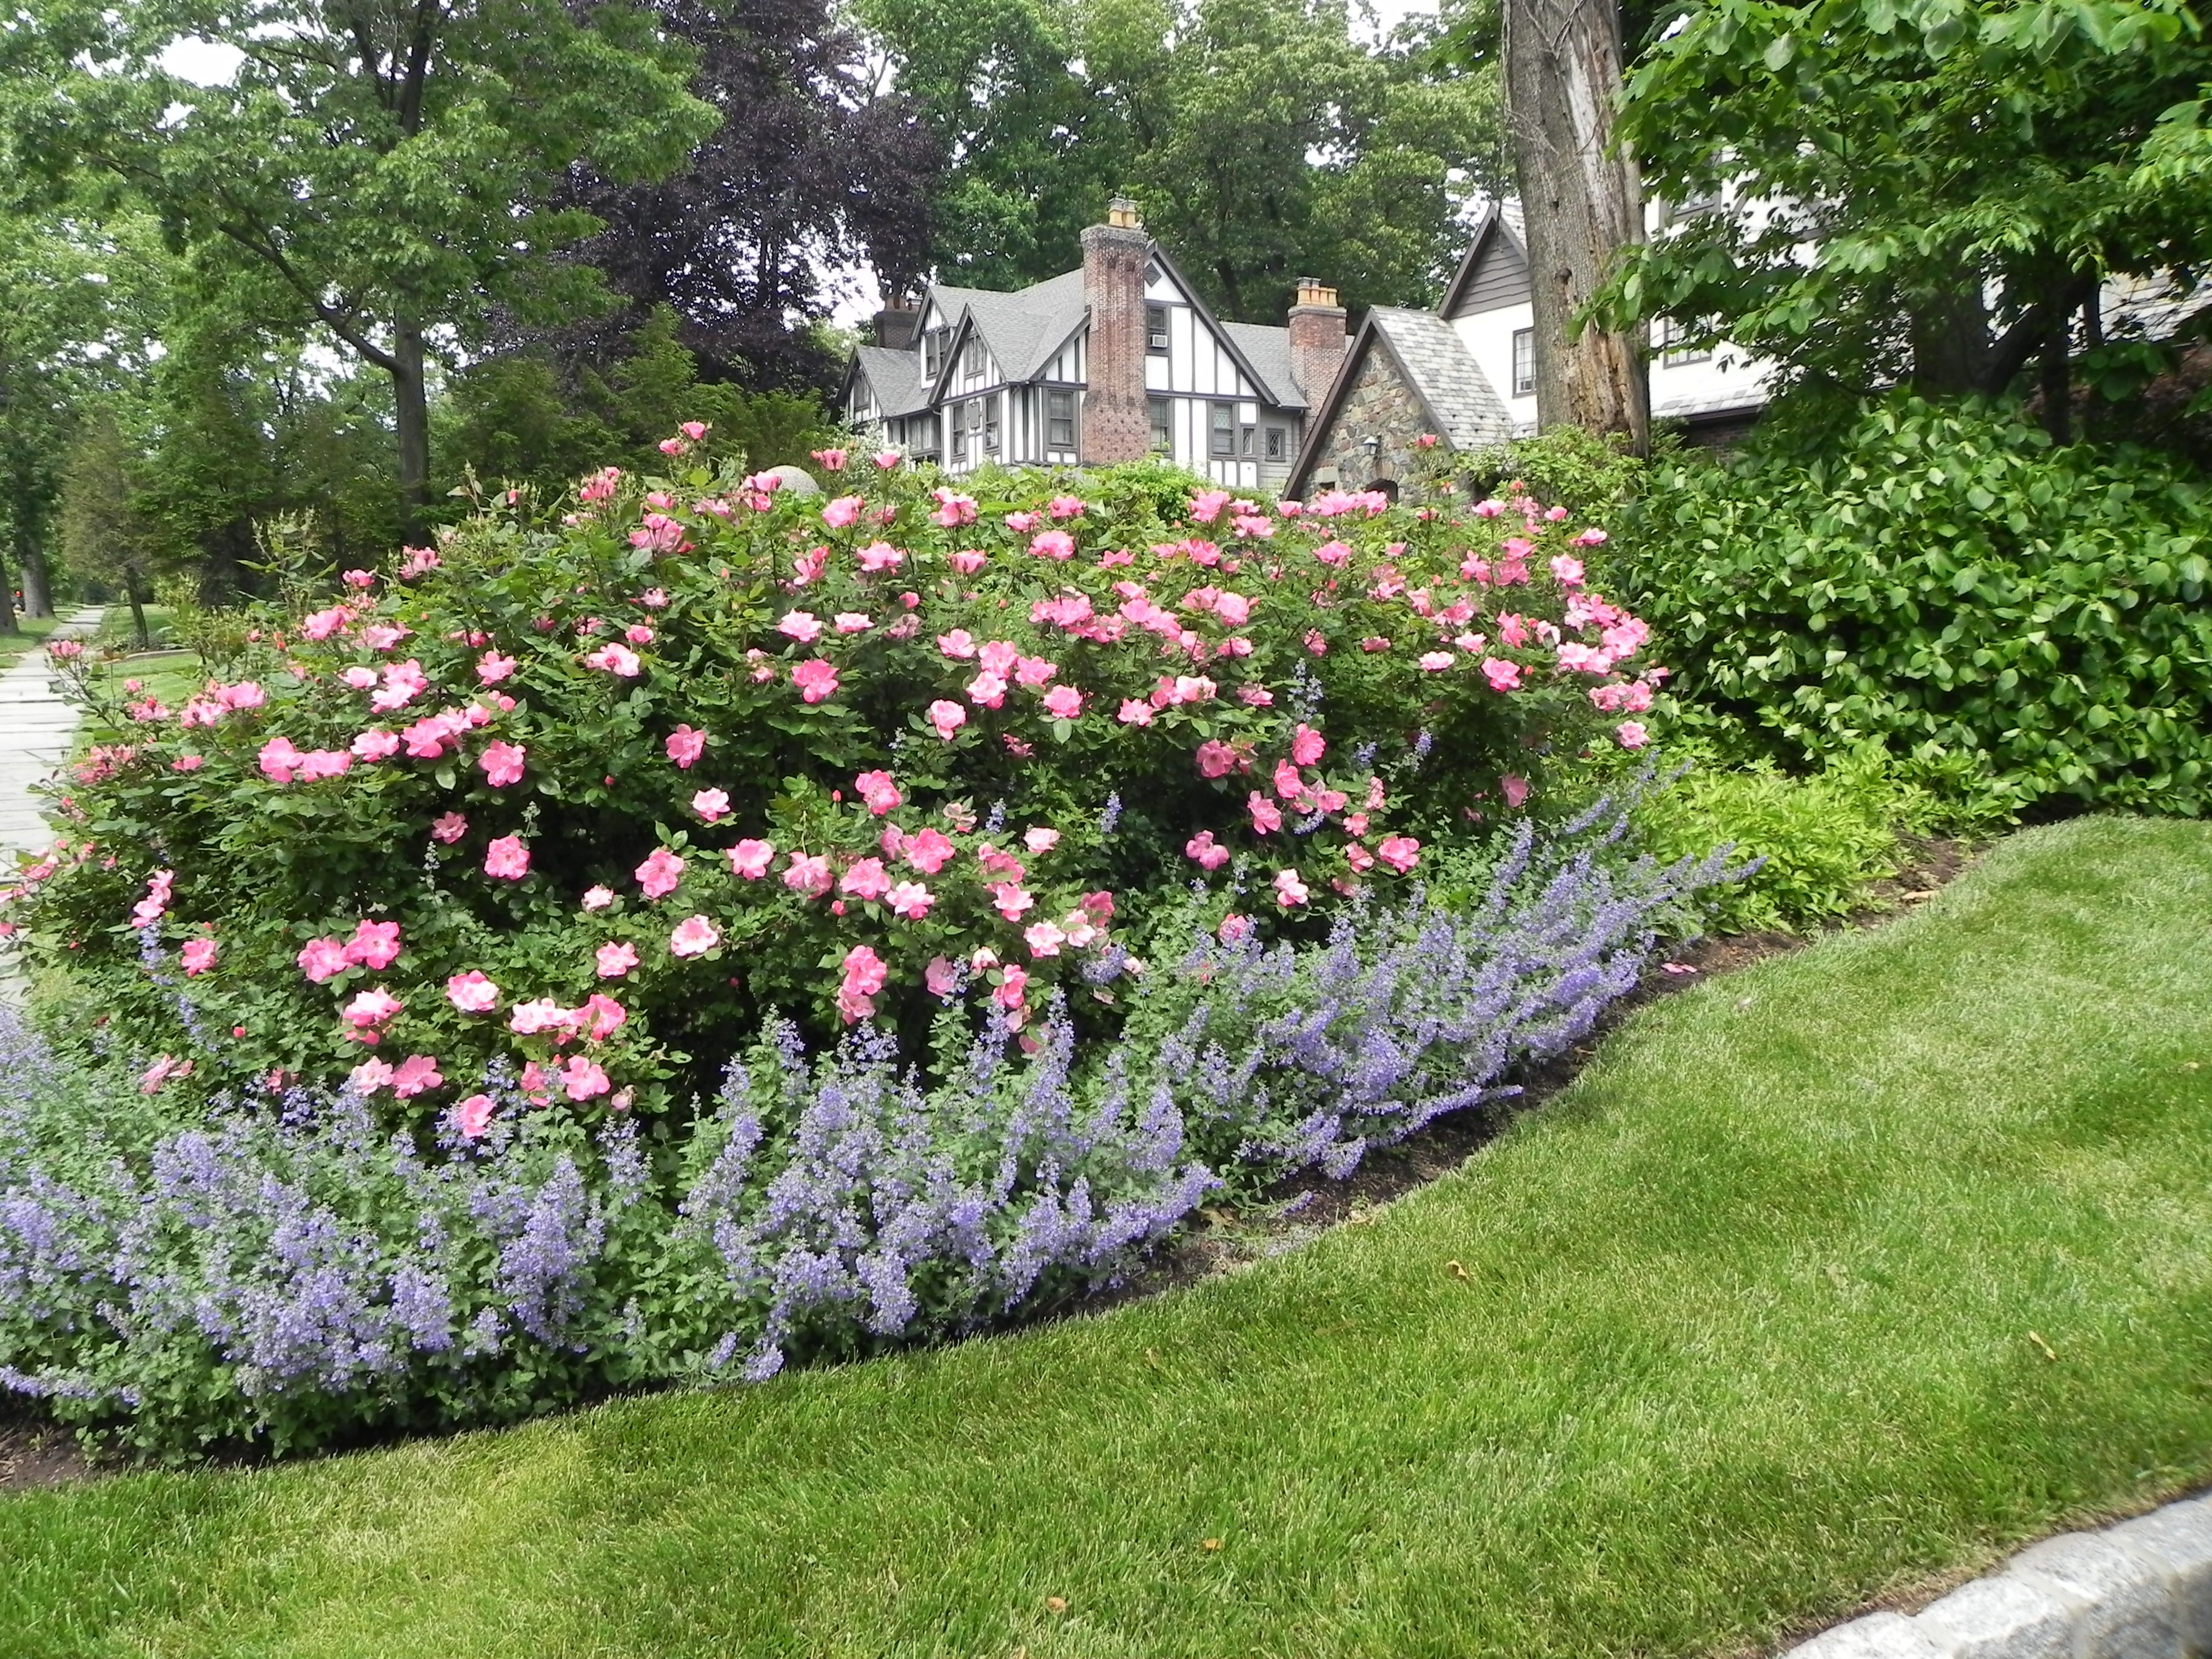 Landscape Design With Knockout Roses If You Haven T Heard About The Knock Out Rose It Is Time Have This